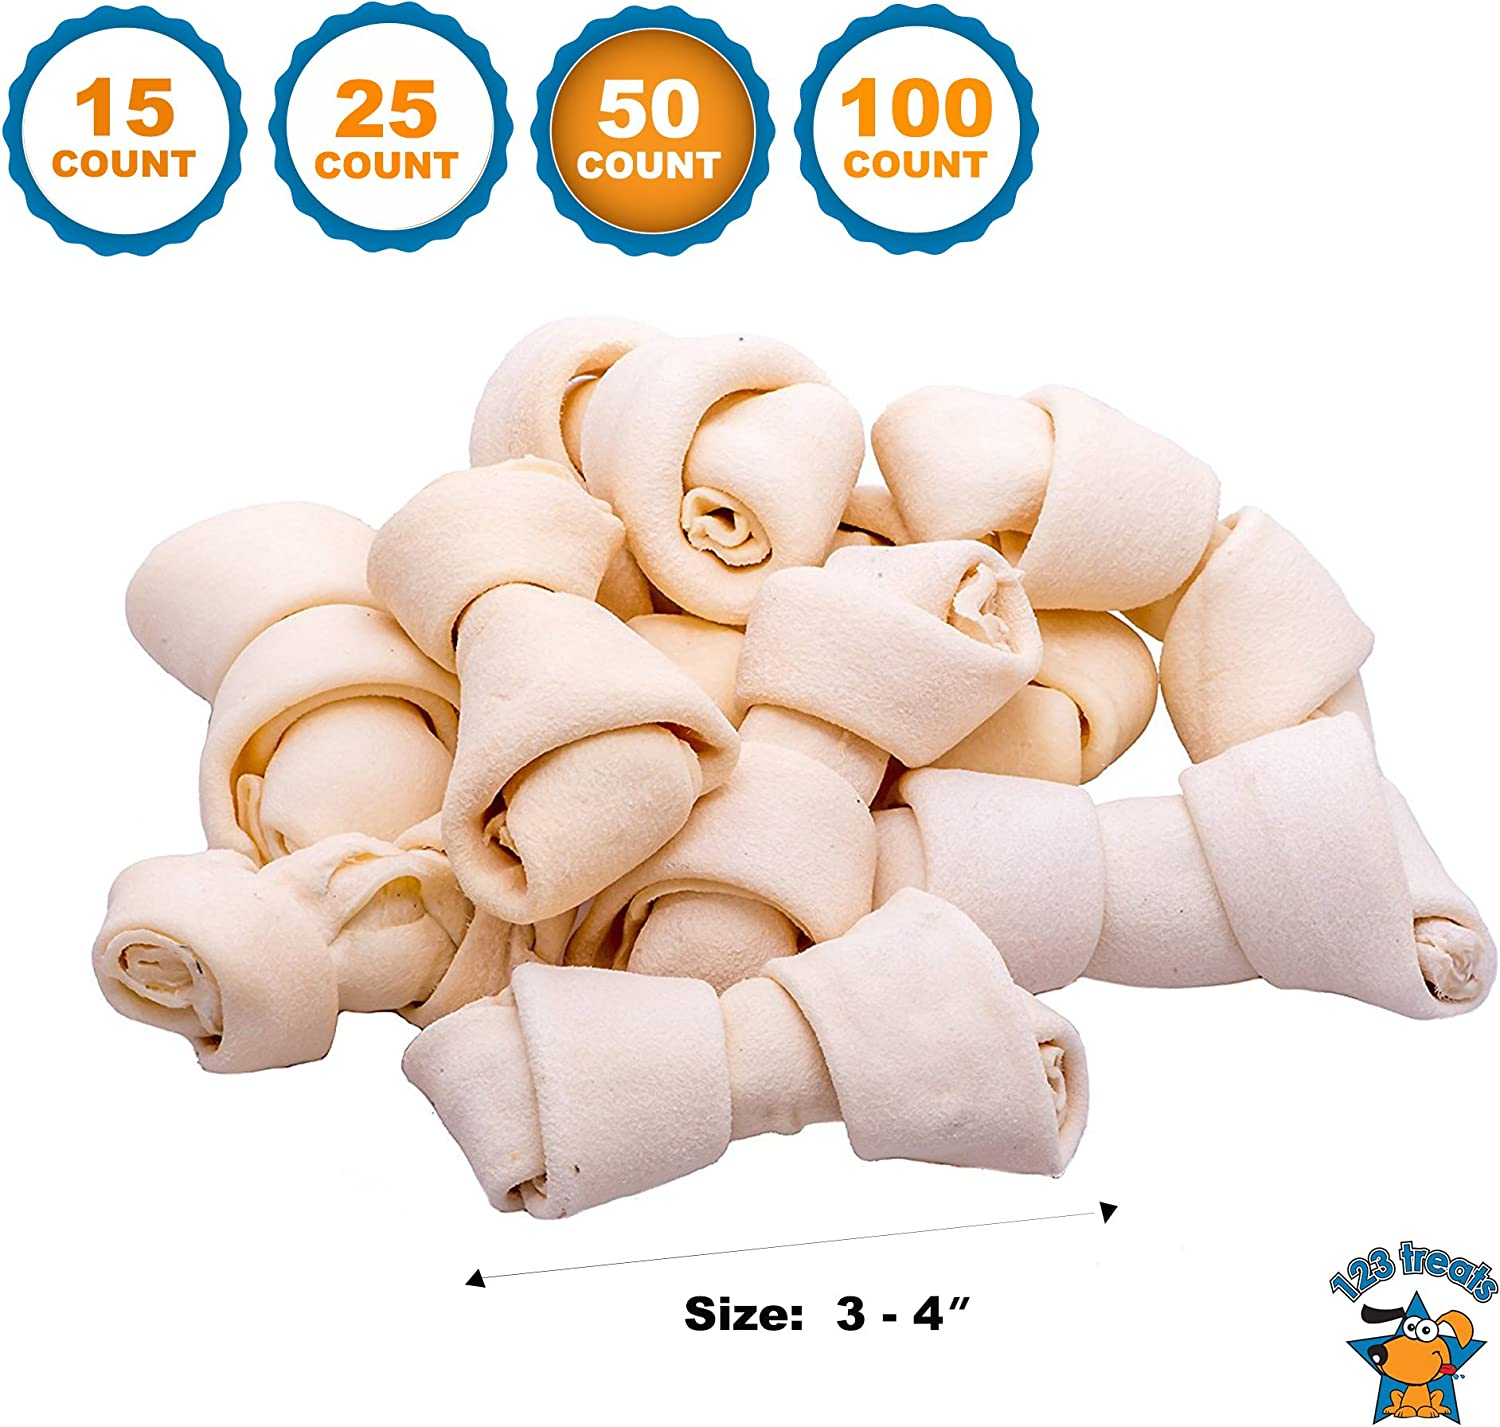 123 Treats | Rawhide Bones Chews 3-4"